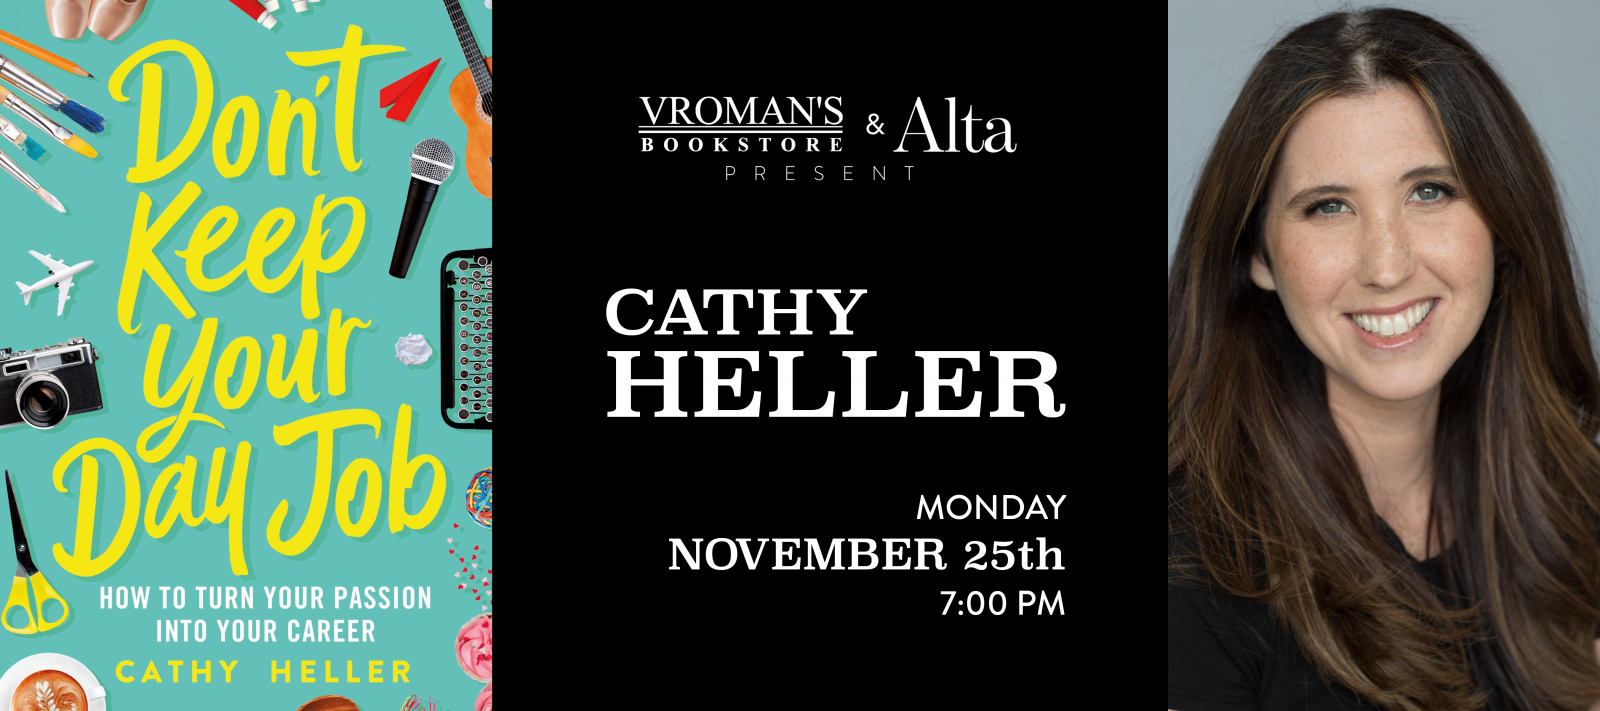 book signing with Cathy Heller Monday November 25 at 7pm